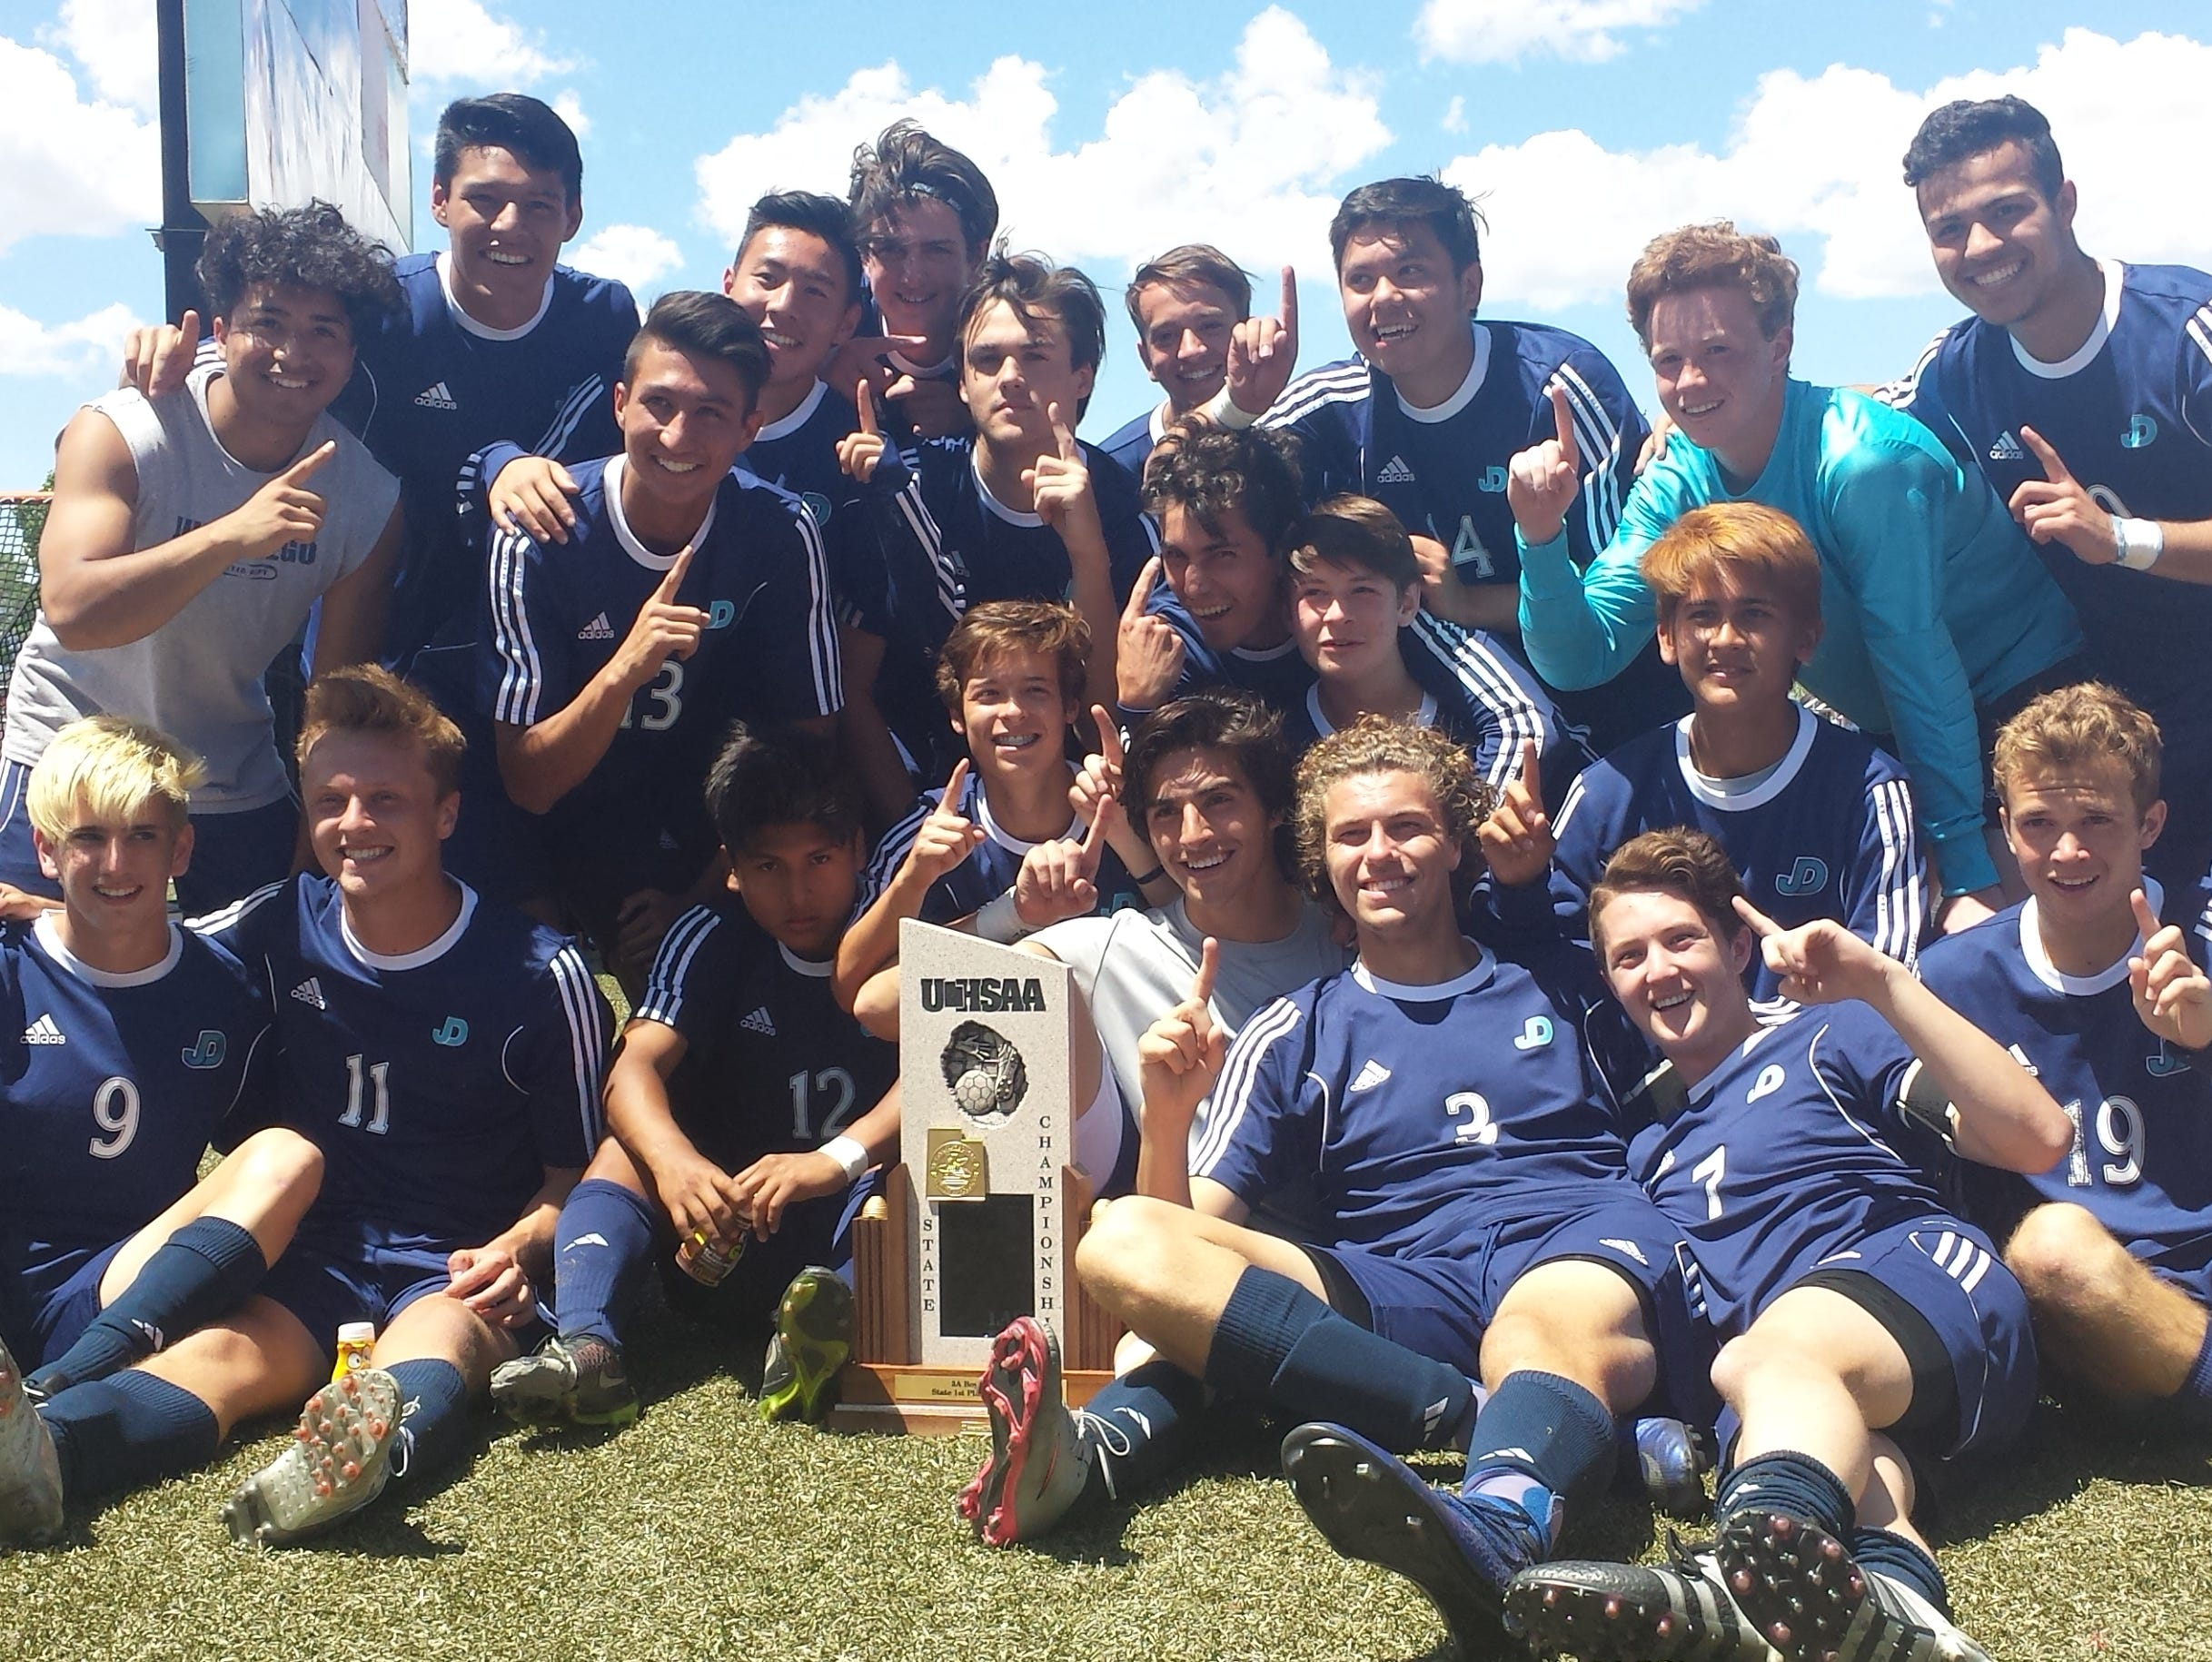 Juan Diego capped off an undefeated season with a tough 1-0 win over the Snow Canyon Warriors in the 3A state championship game on Saturday.